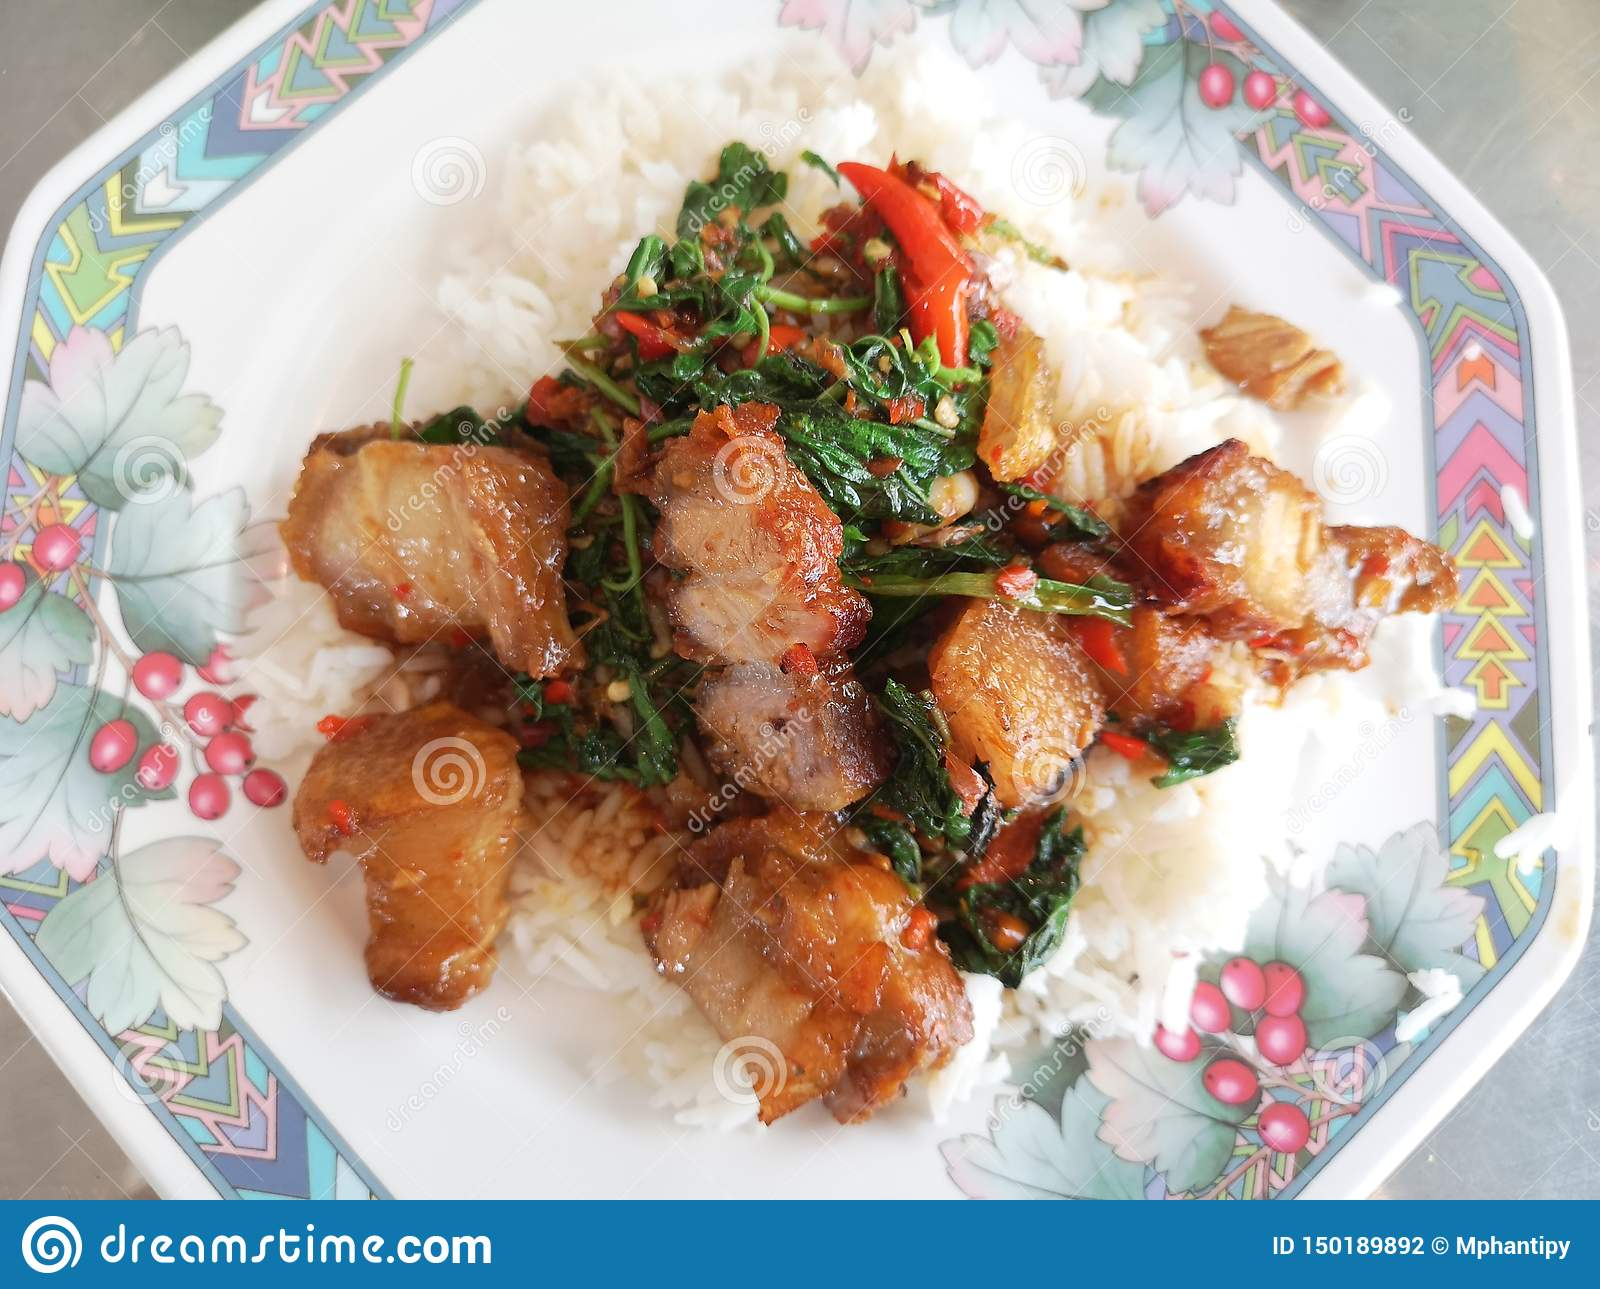 Stir Fried Spicy Crispy Pork with Thai Basil